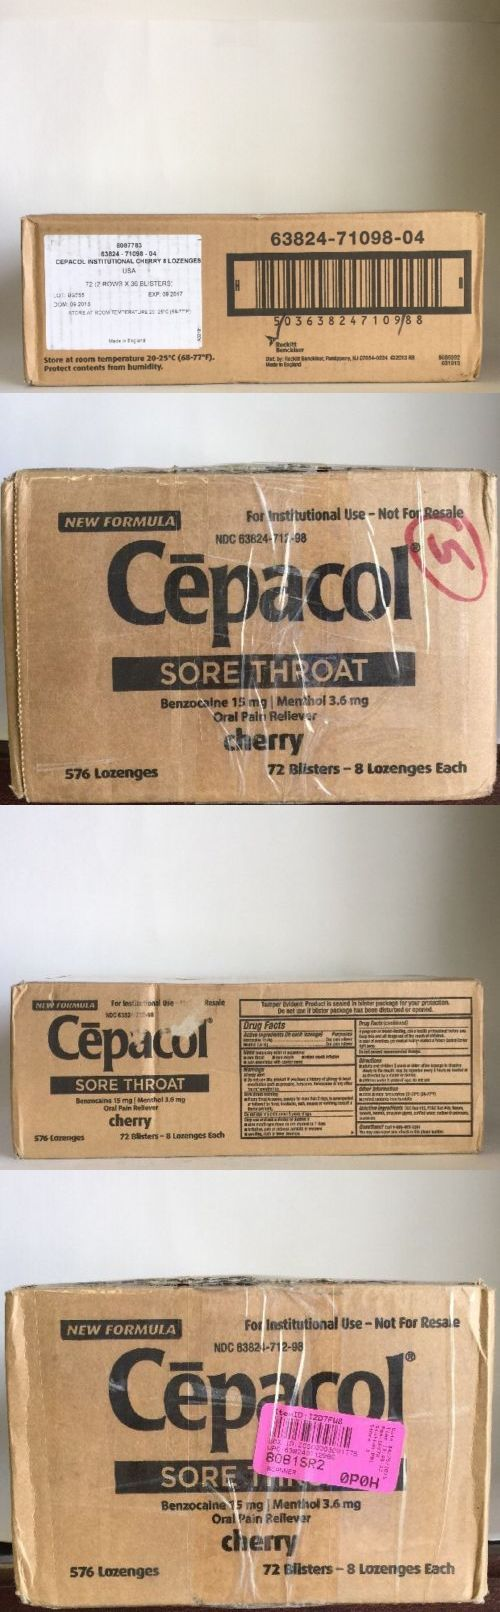 Cough Cold and Flu: Cepacol Sore Throat Benzocain 15Mg| Menthol 3.6Mg Oral Pain 576 Cherry Lozenges -> BUY IT NOW ONLY: $83.59 on eBay!